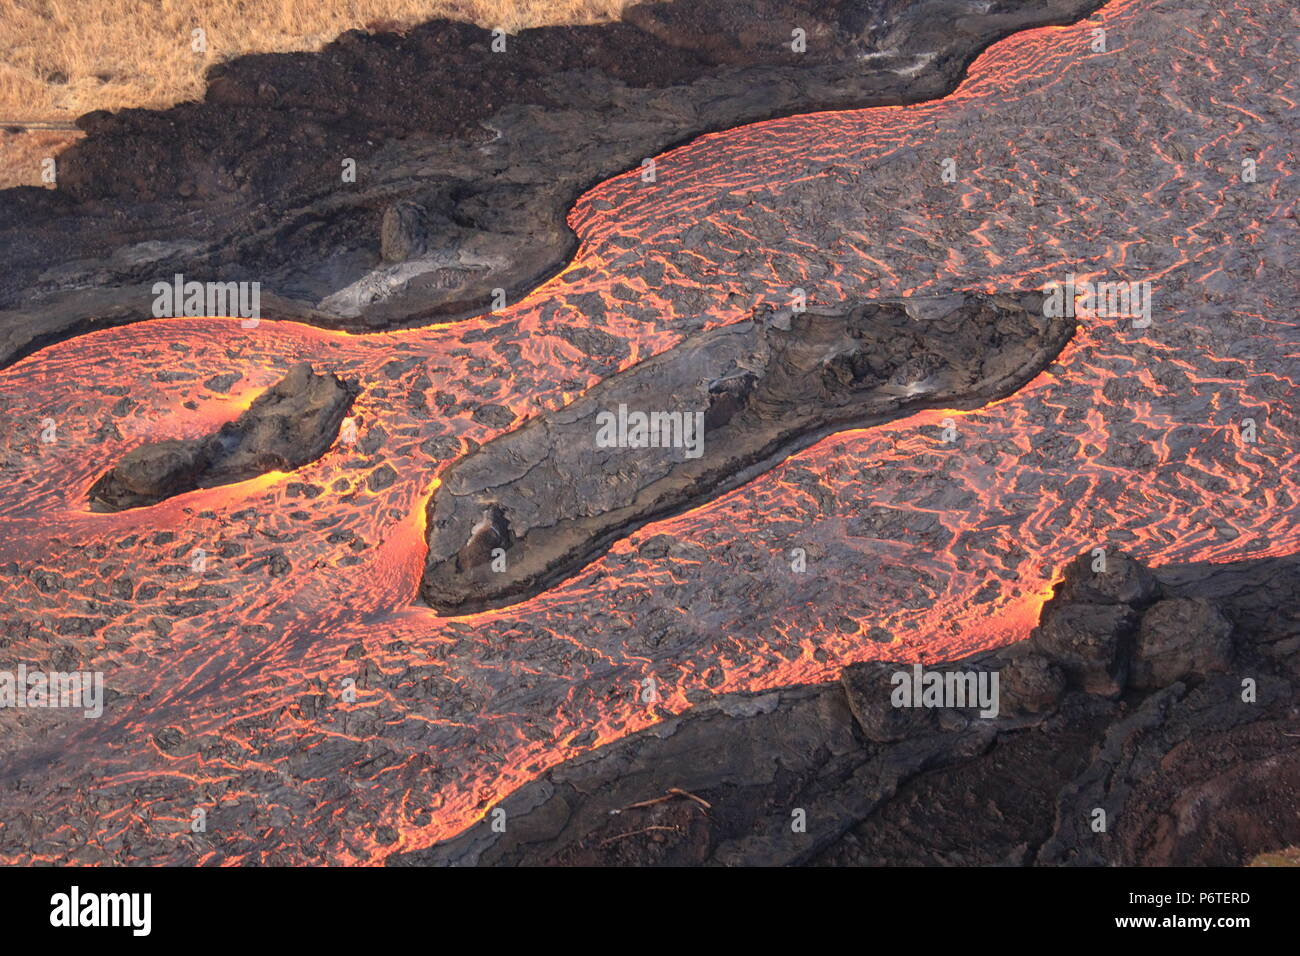 Lava flowing into an open channel from fissure 8 travels to the sea 8 miles away caused by the eruption of the Kilauea volcano June 30, 2018 in Hawaii. The recent eruption continues destroying homes, forcing evacuations and spewing lava and poison gas on the Big Island of Hawaii. - Stock Image